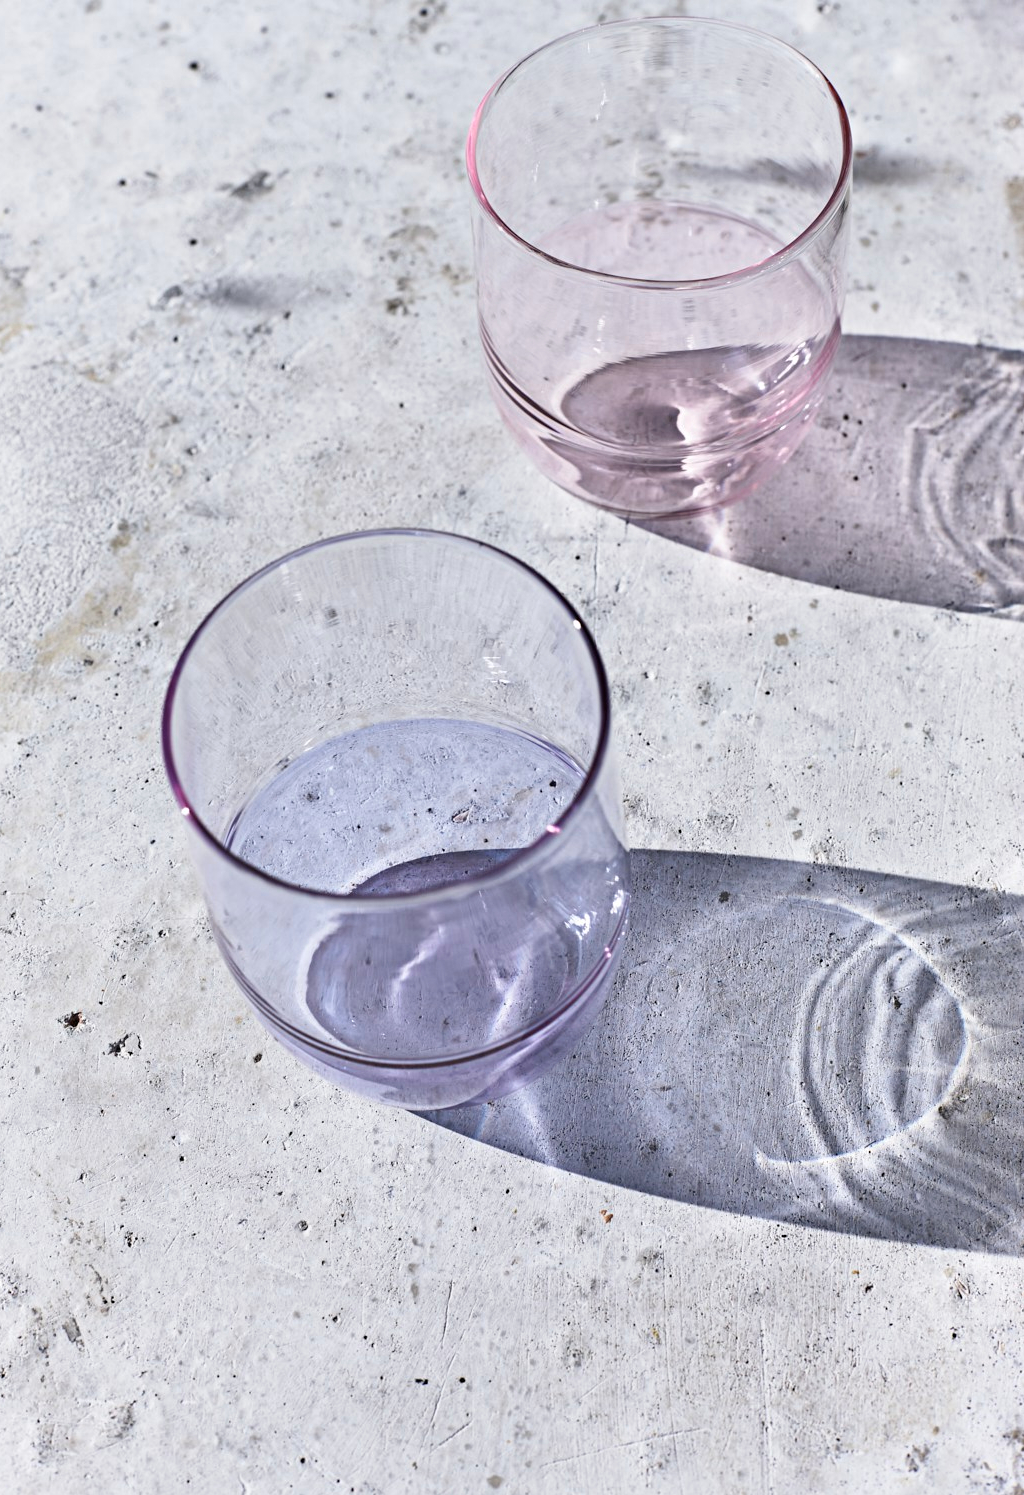 Lilac and pink pastel coloured glass tumblers for the Tate. Still life photography by Joanna Henderson